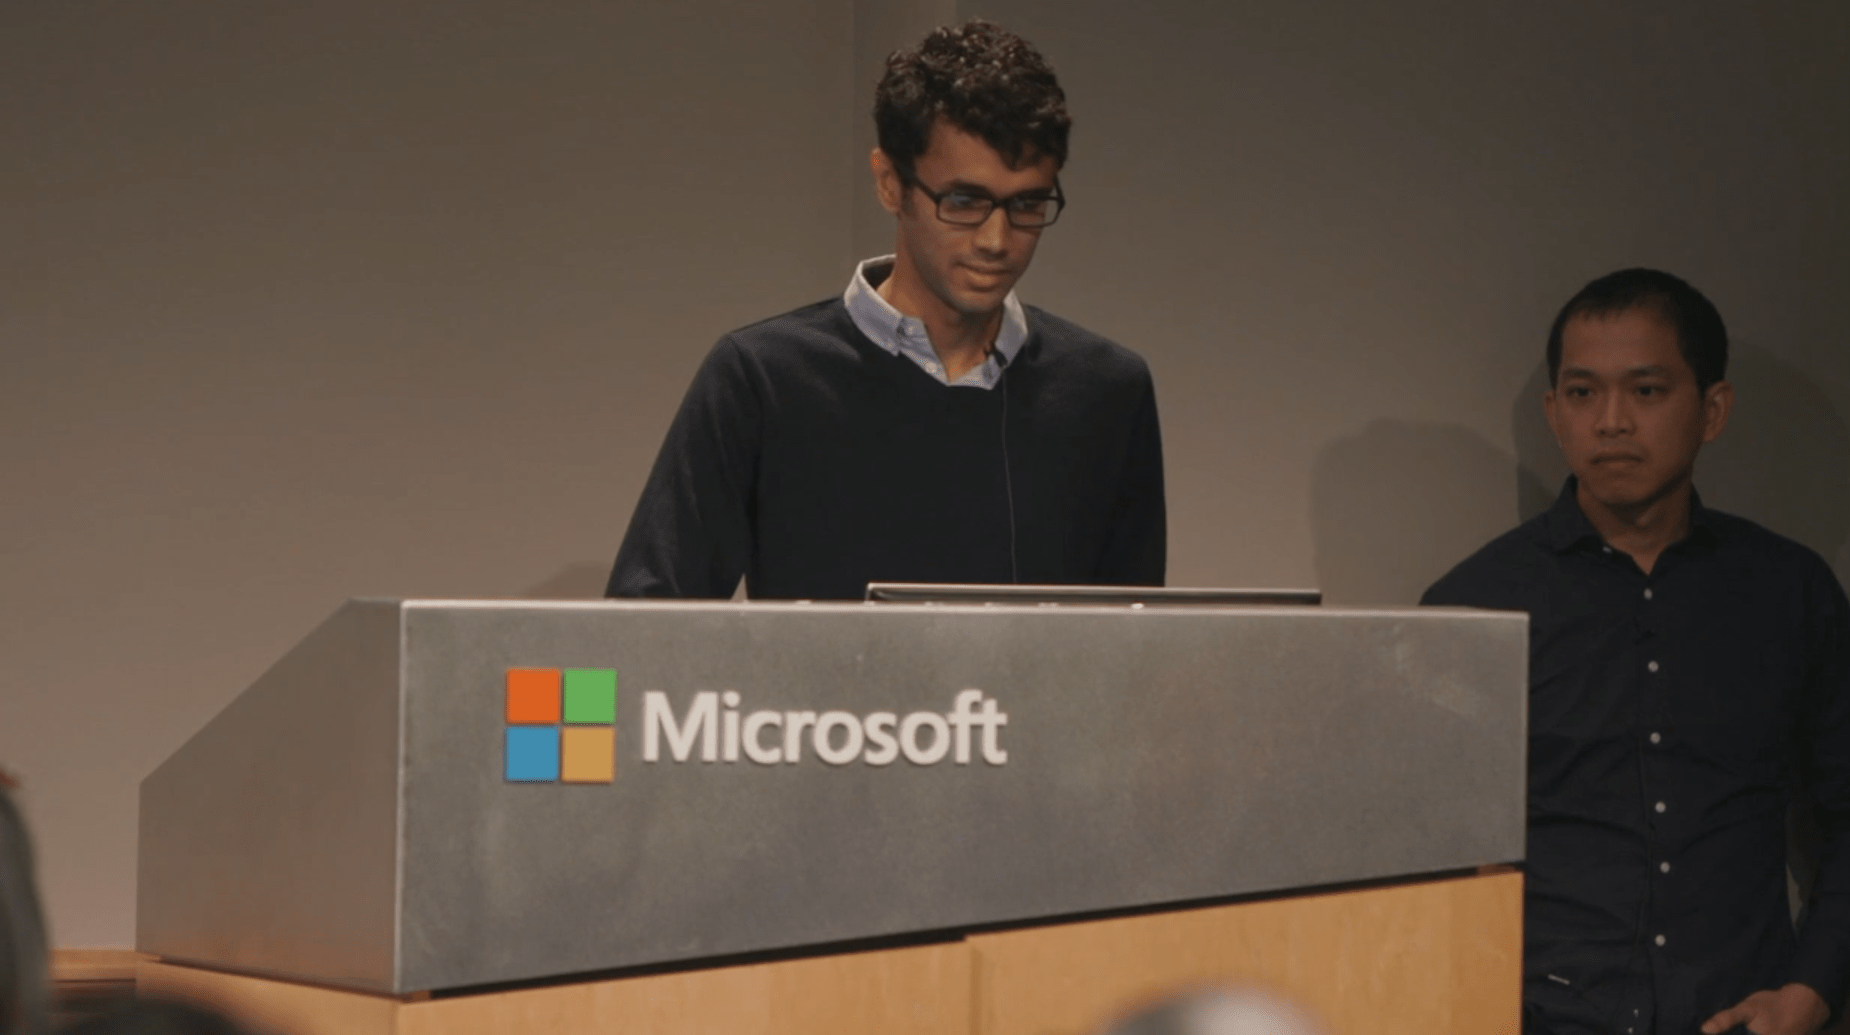 Presenting Distance Teaching Mobile learning at Microsoft event